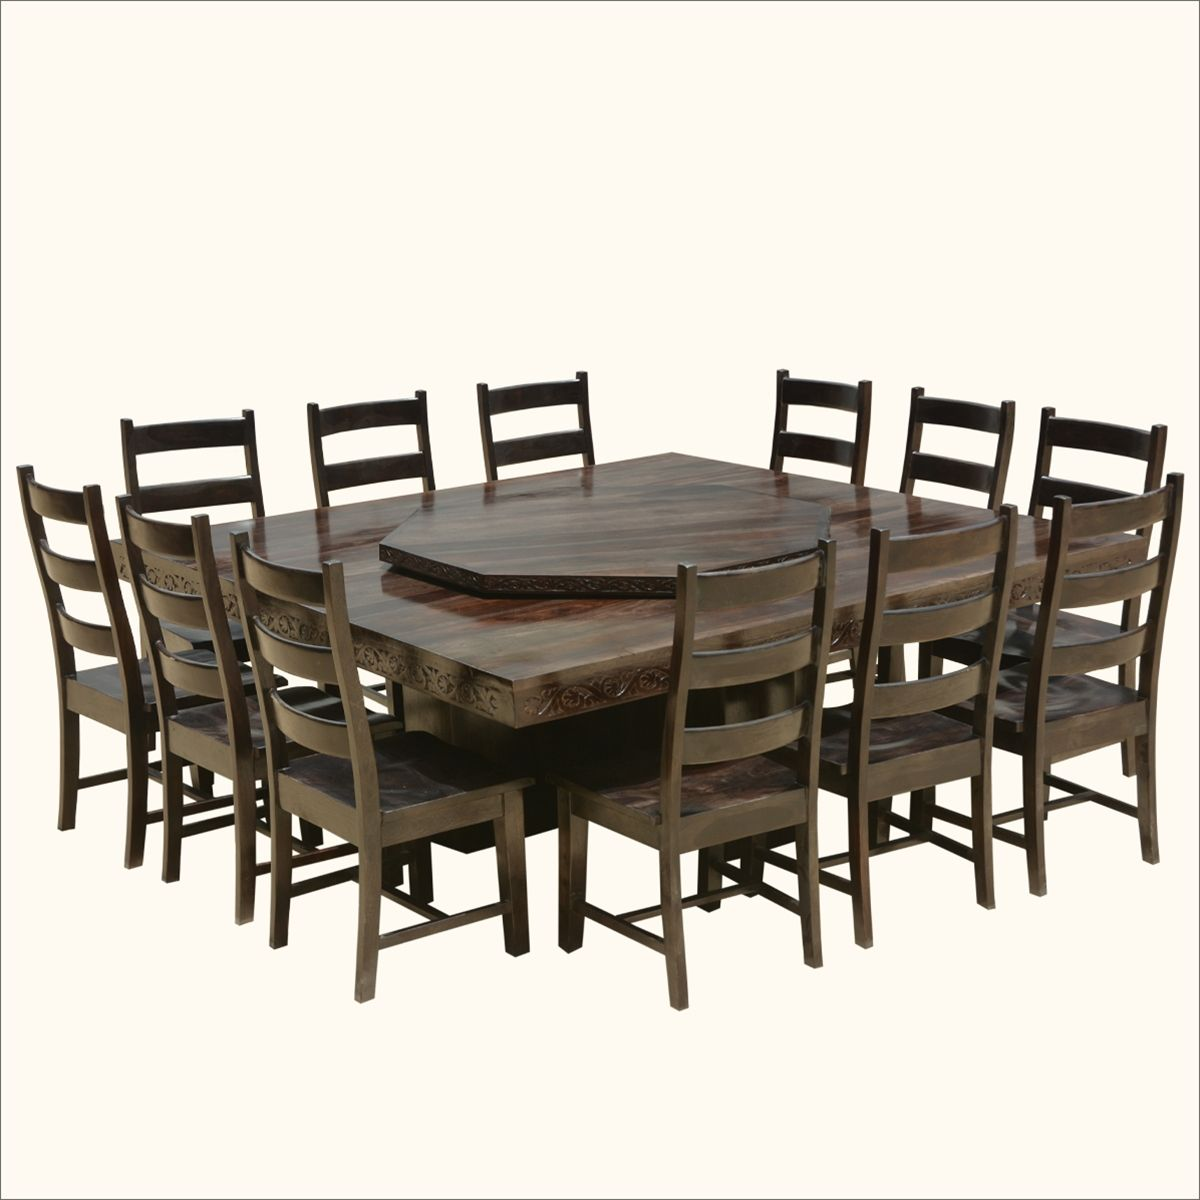 12 Chairs Modern Pioneer Solid Wood Lazy Susan Pedestal Dining Table